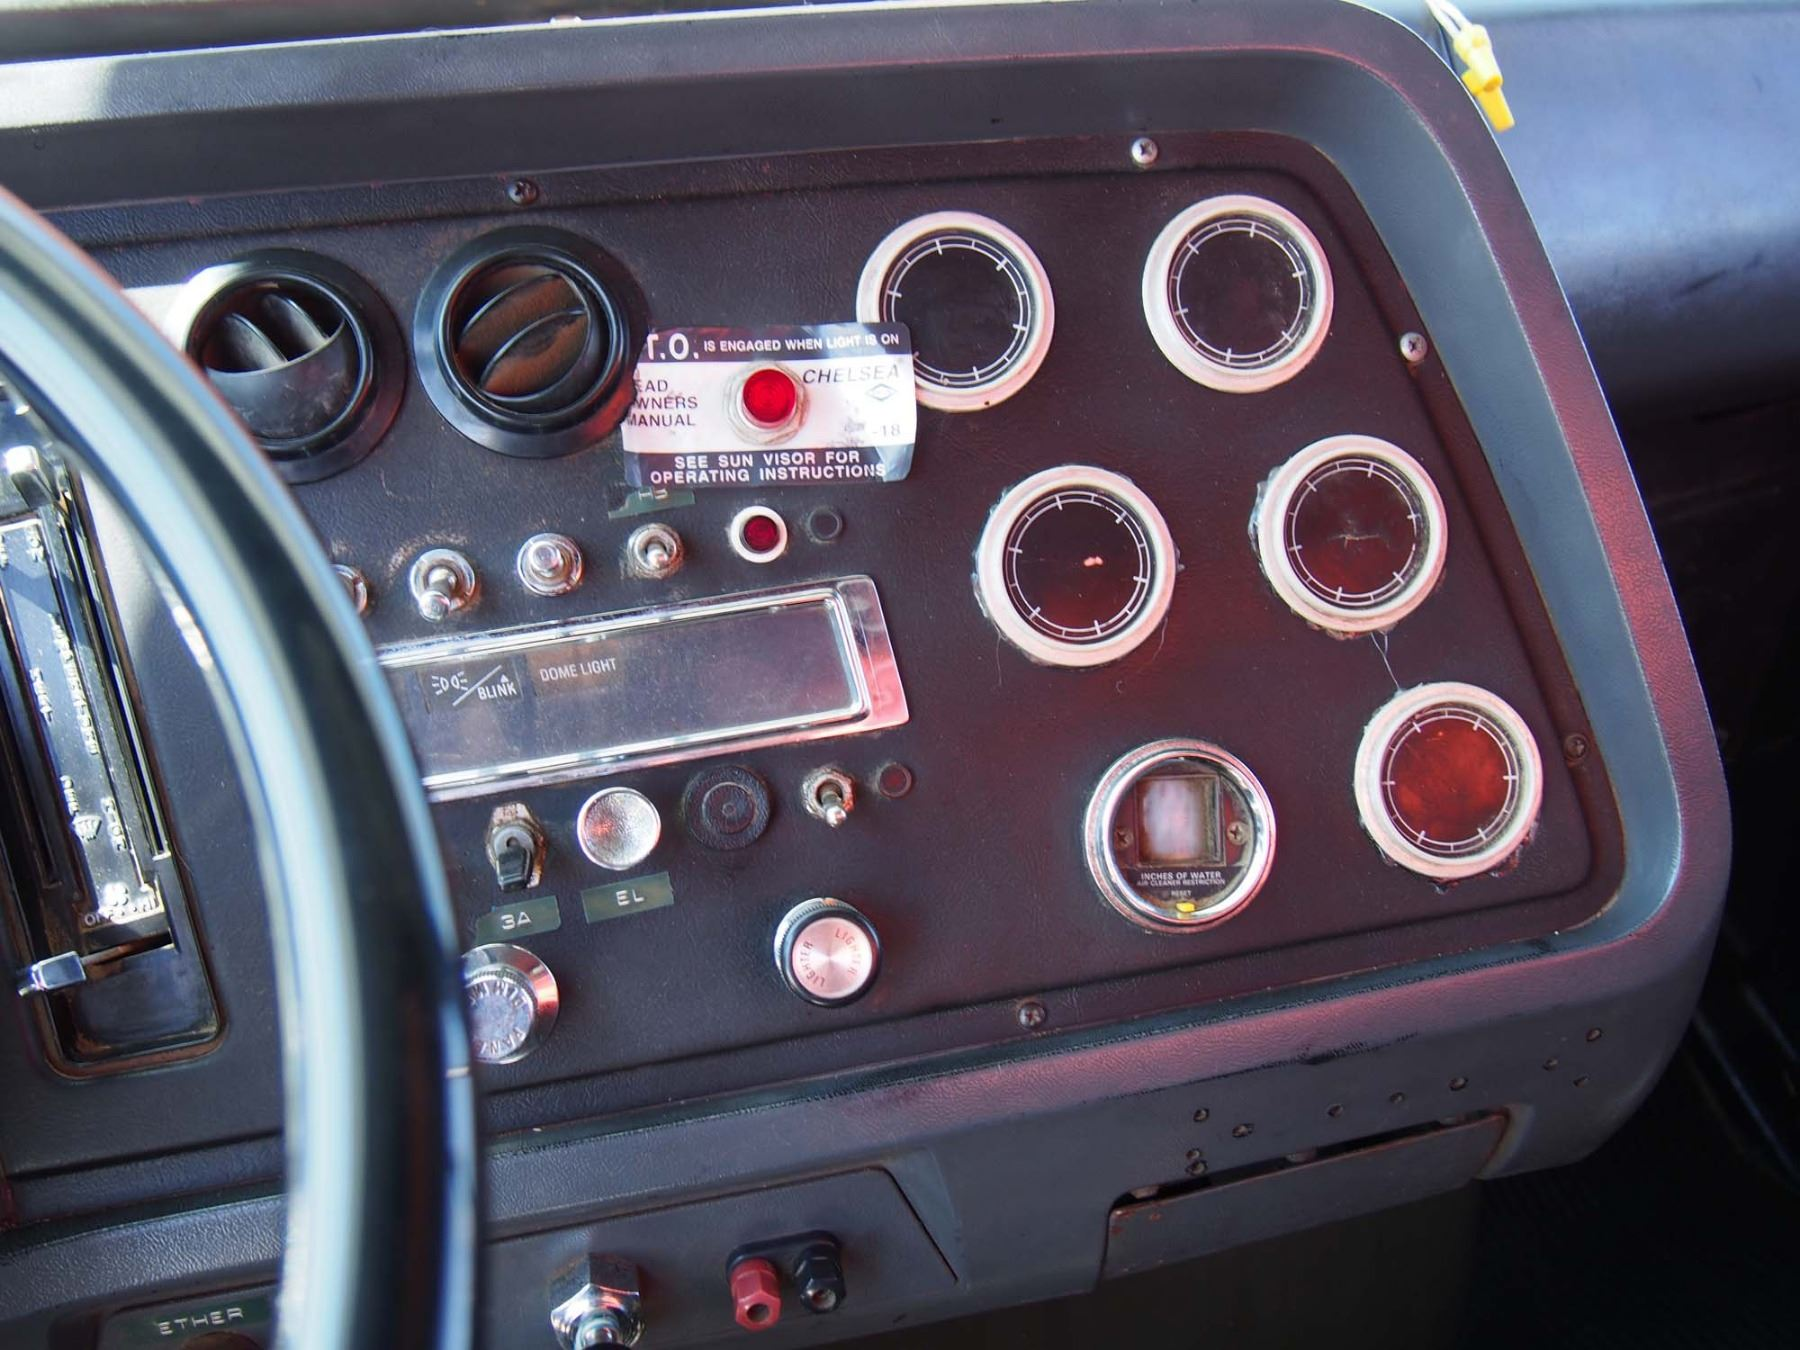 small resolution of  image 8 1988 ford l9000 tandem truck 855 cummings engine 20 box and